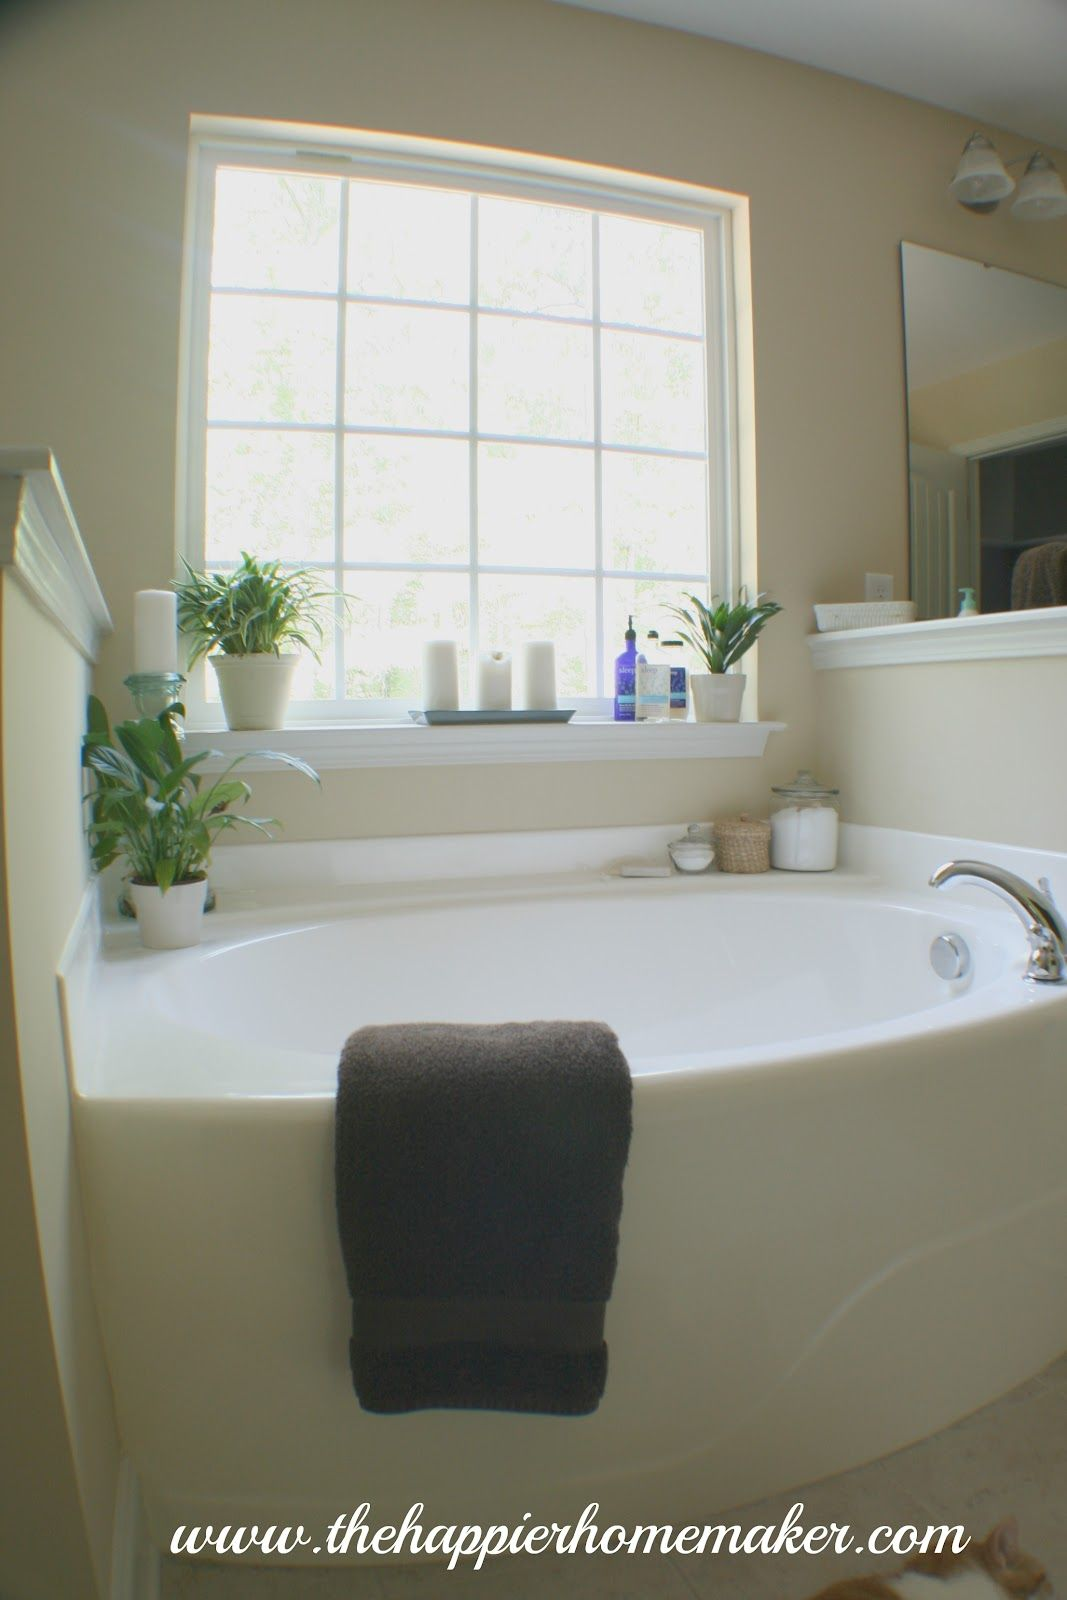 Decorating Around A Bathtub Pinterest Bathtubs Decorating And Bath